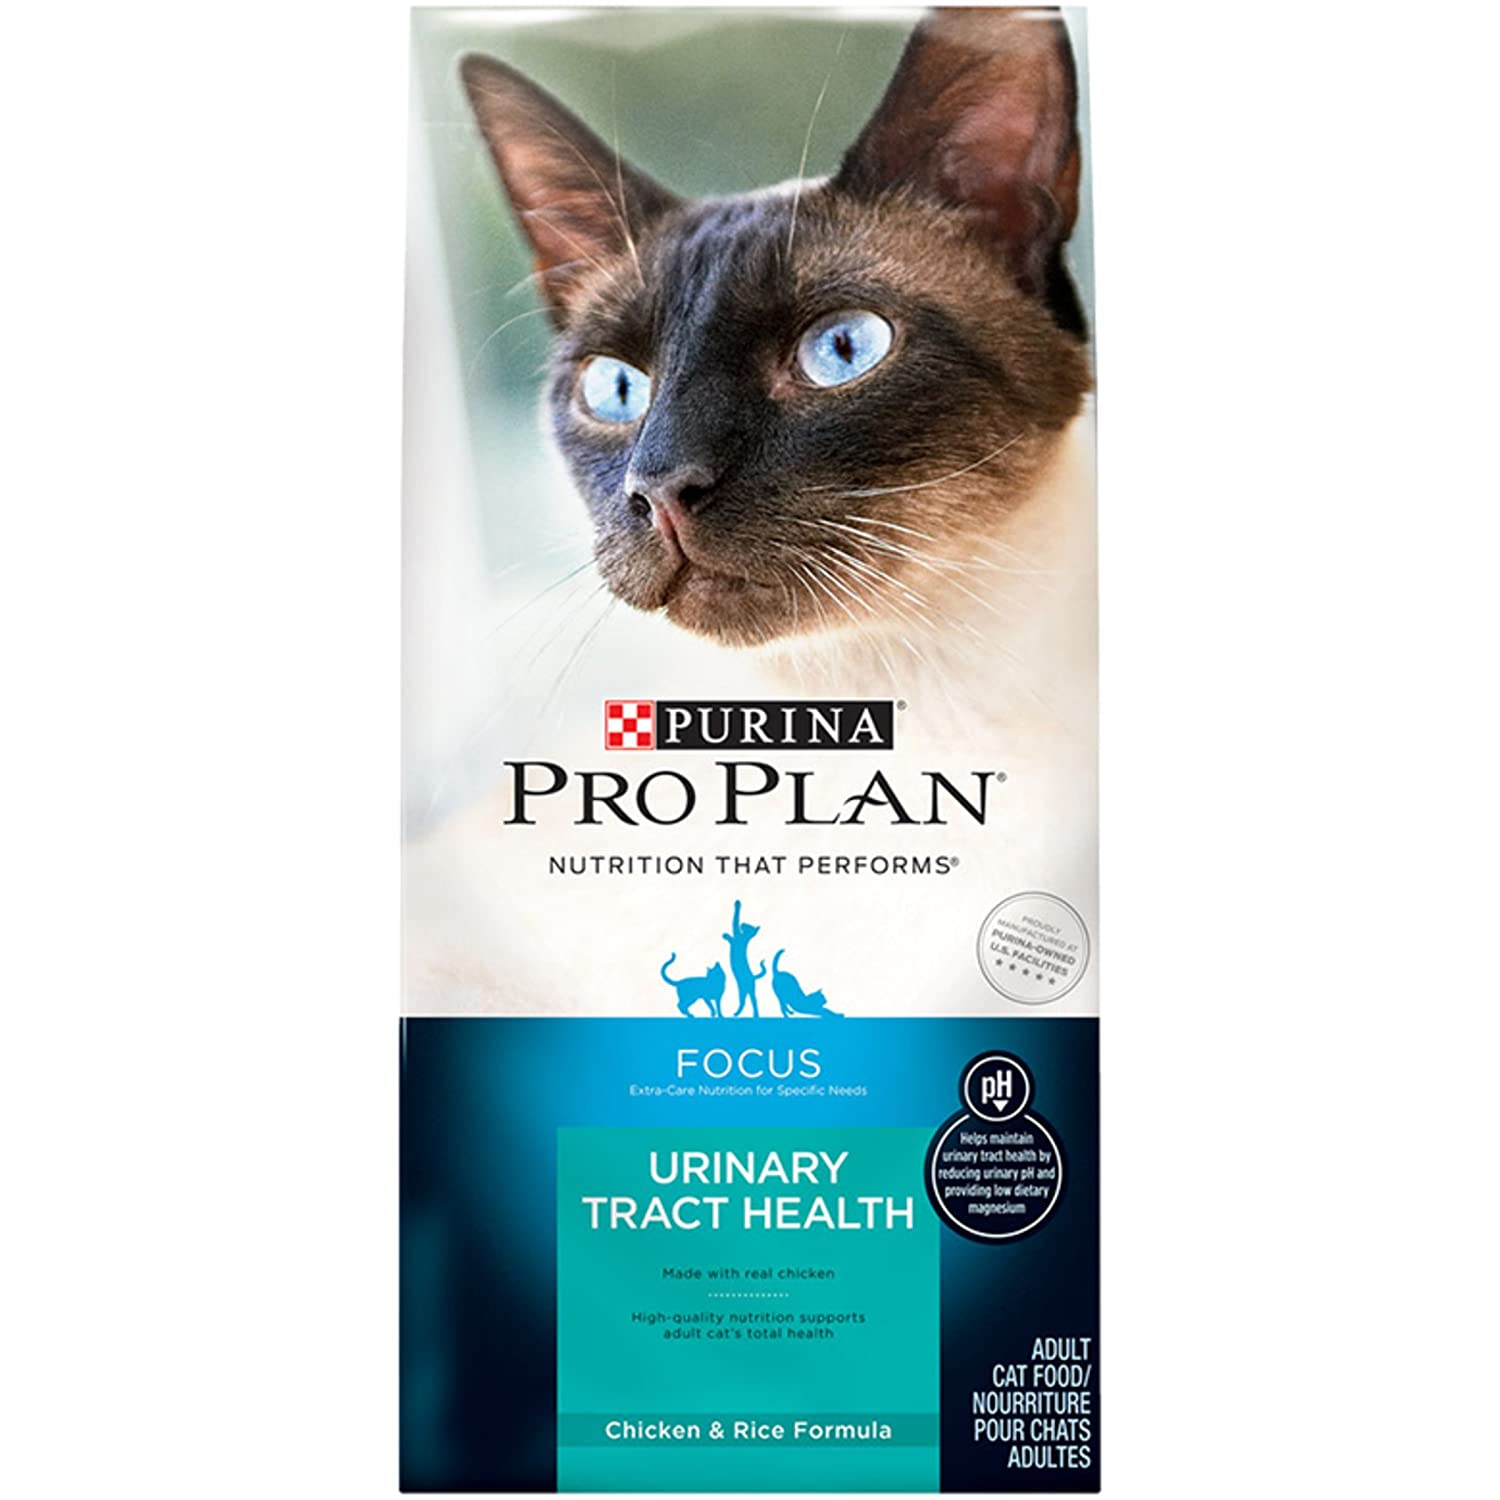 3.5 lb Purina Pro Plan Dry Cat Food Focus, Adult Urinary Tract Health Formula, 3.5-Pound Bag, Pack of 1